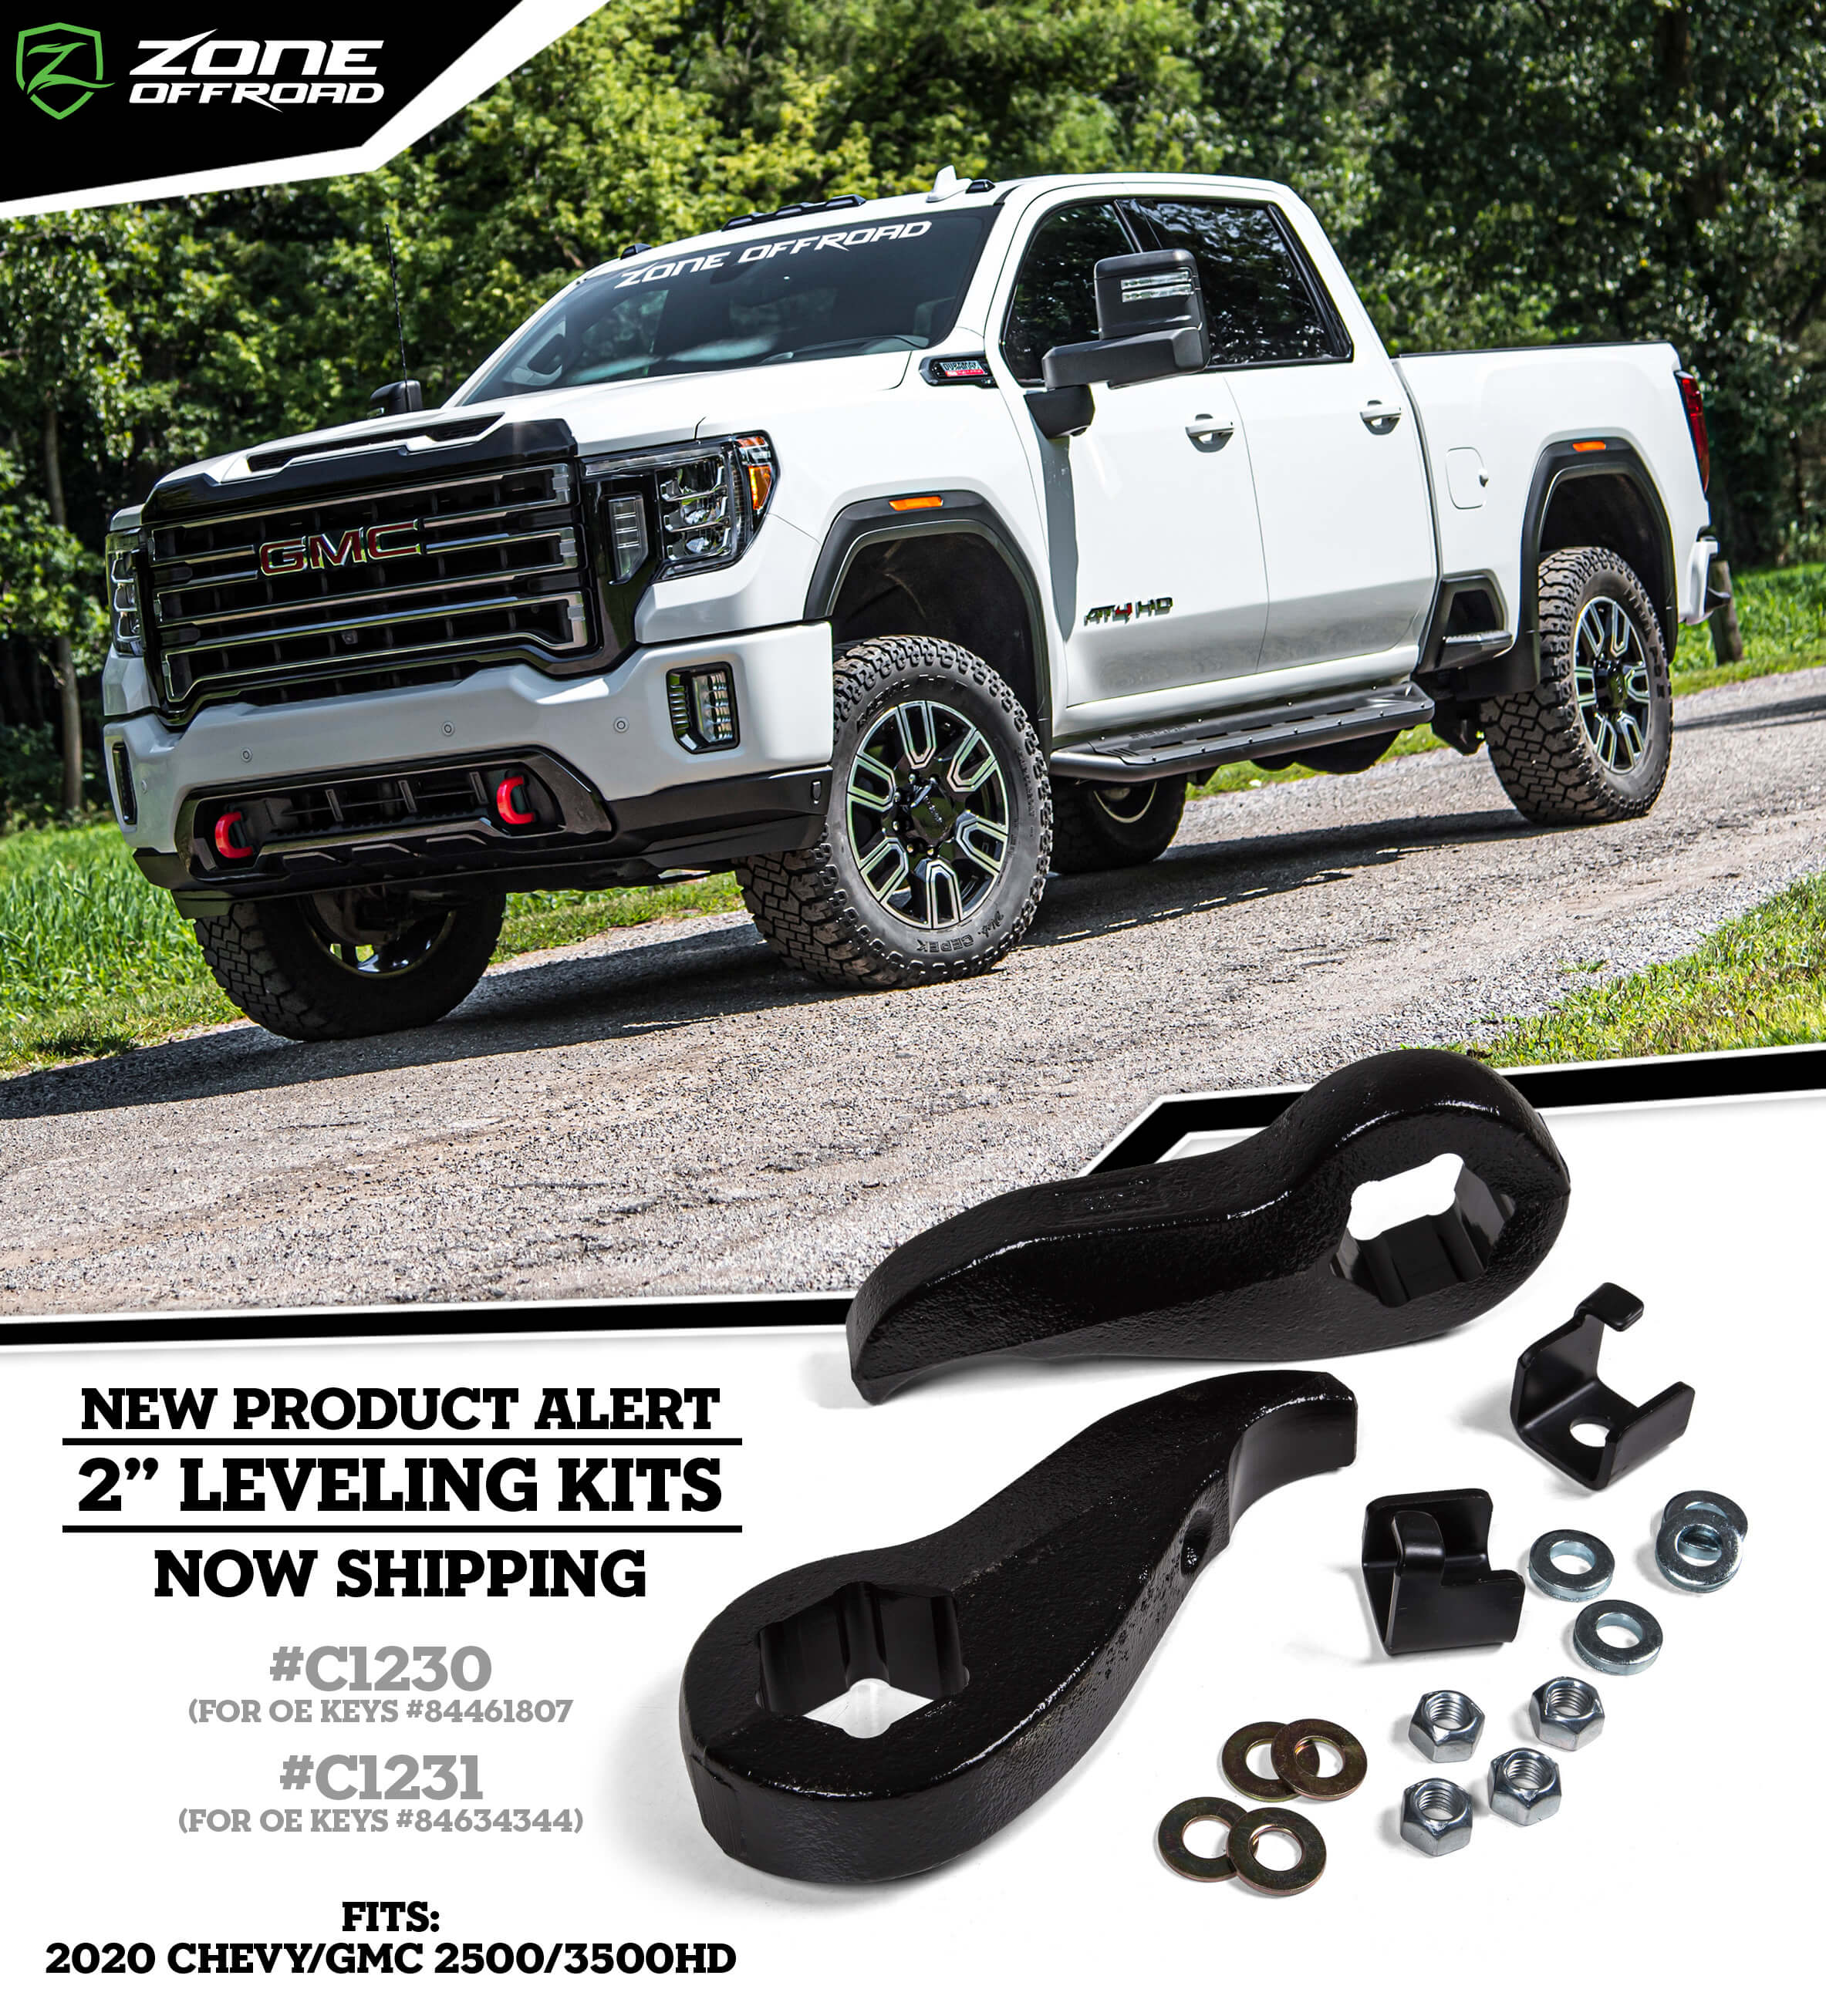 2020 Chevy Gmc 2500hd 3500hd 2 Front Leveling Kit Npa 164 Zone Offroad News